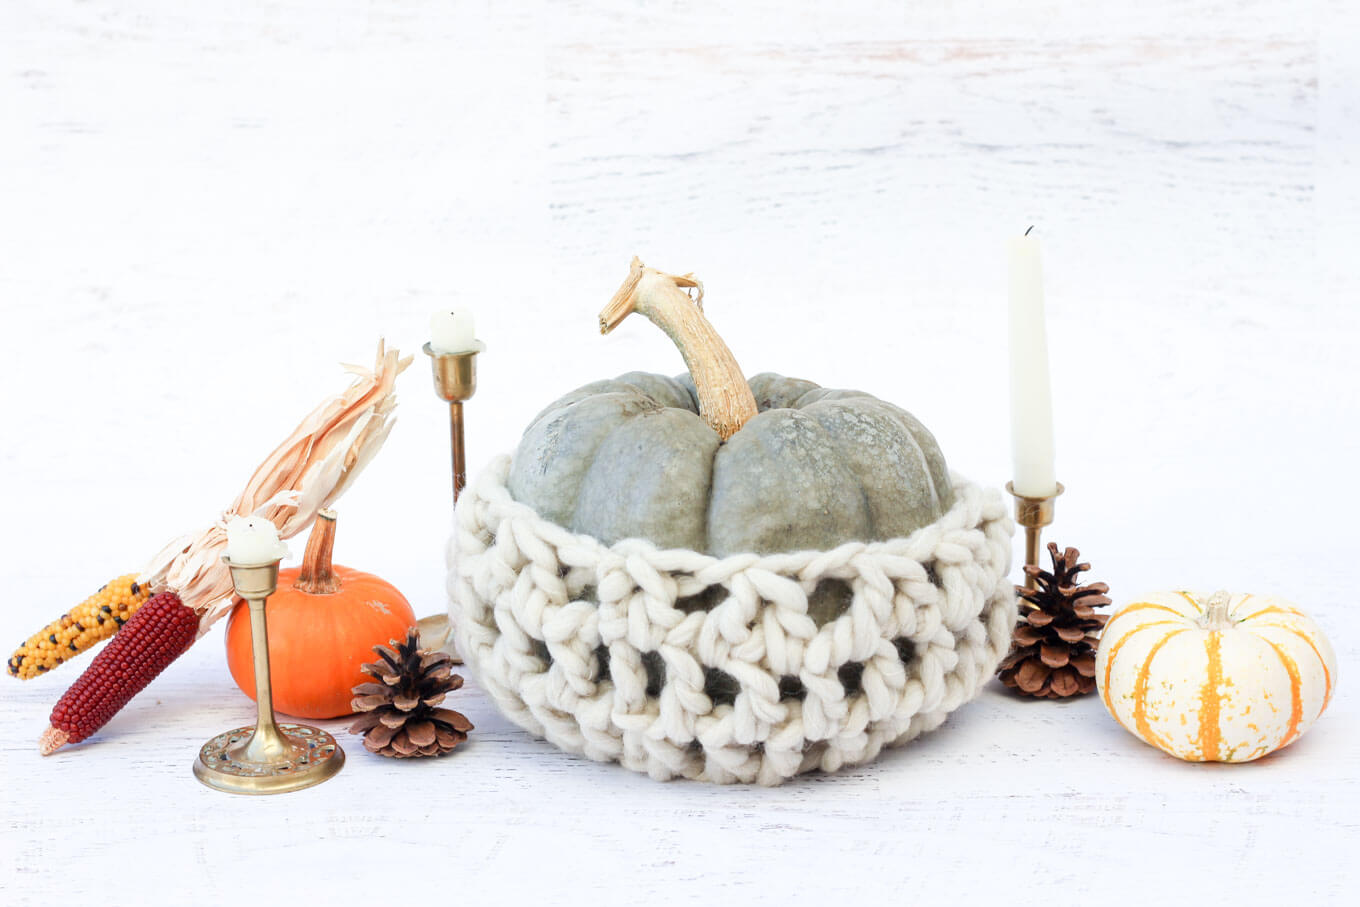 Thanksgiving table decor idea using pumpkins, wool, pinecones and brass candlesticks.